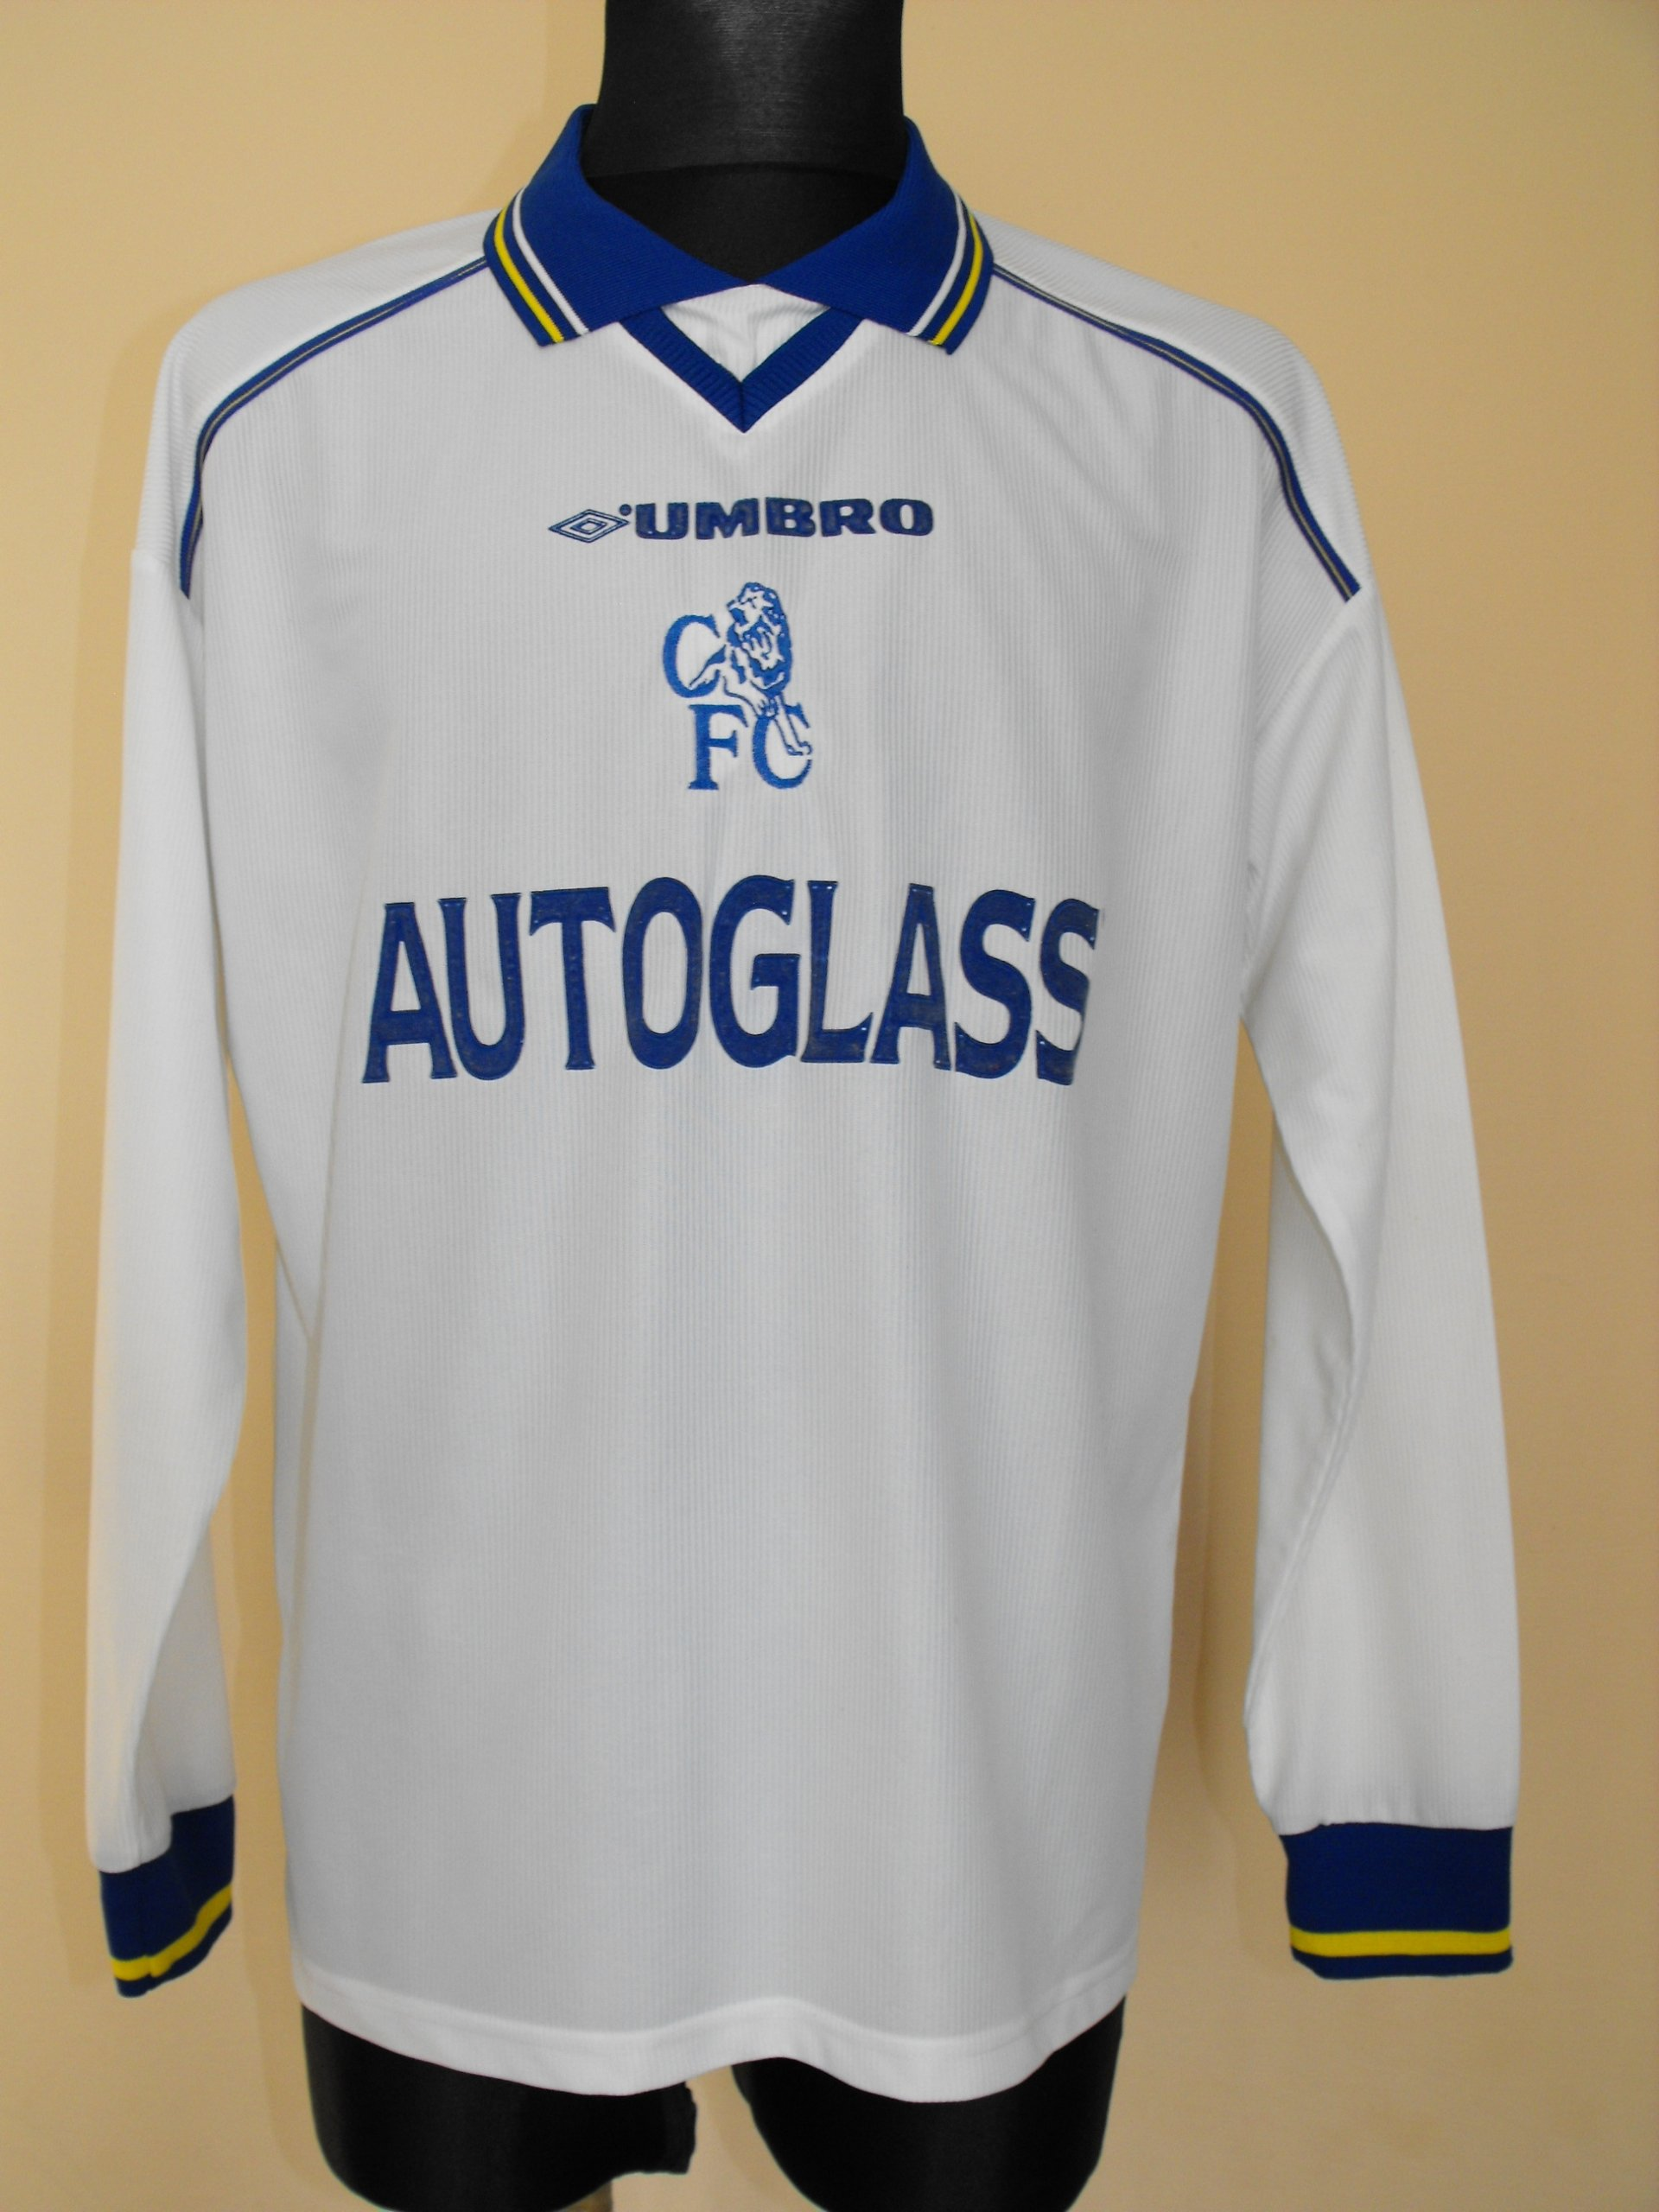 CHELSEA LONDON UMBRO AUTOGLASS UNIKAT ROZM OK.L